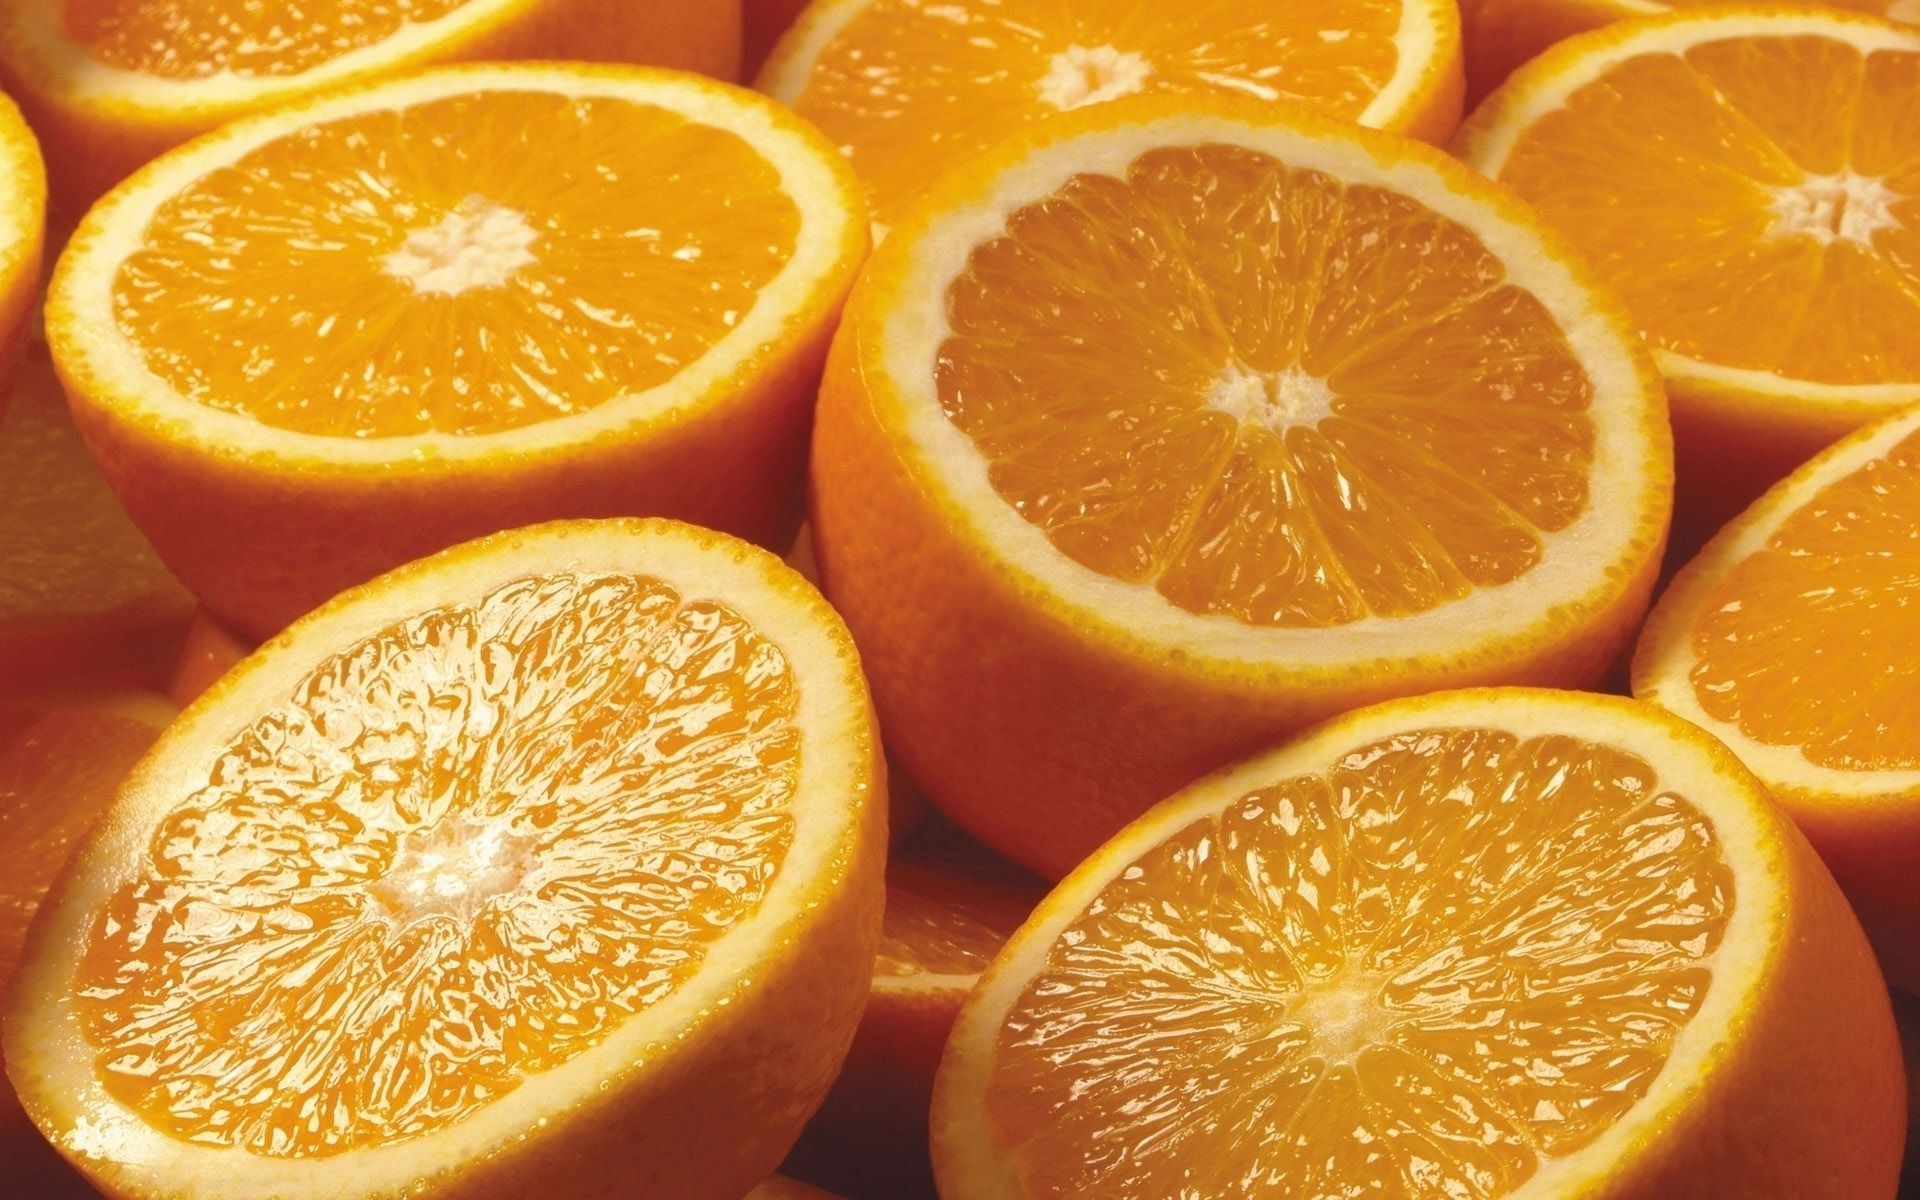 A whole bunch of halves of oranges